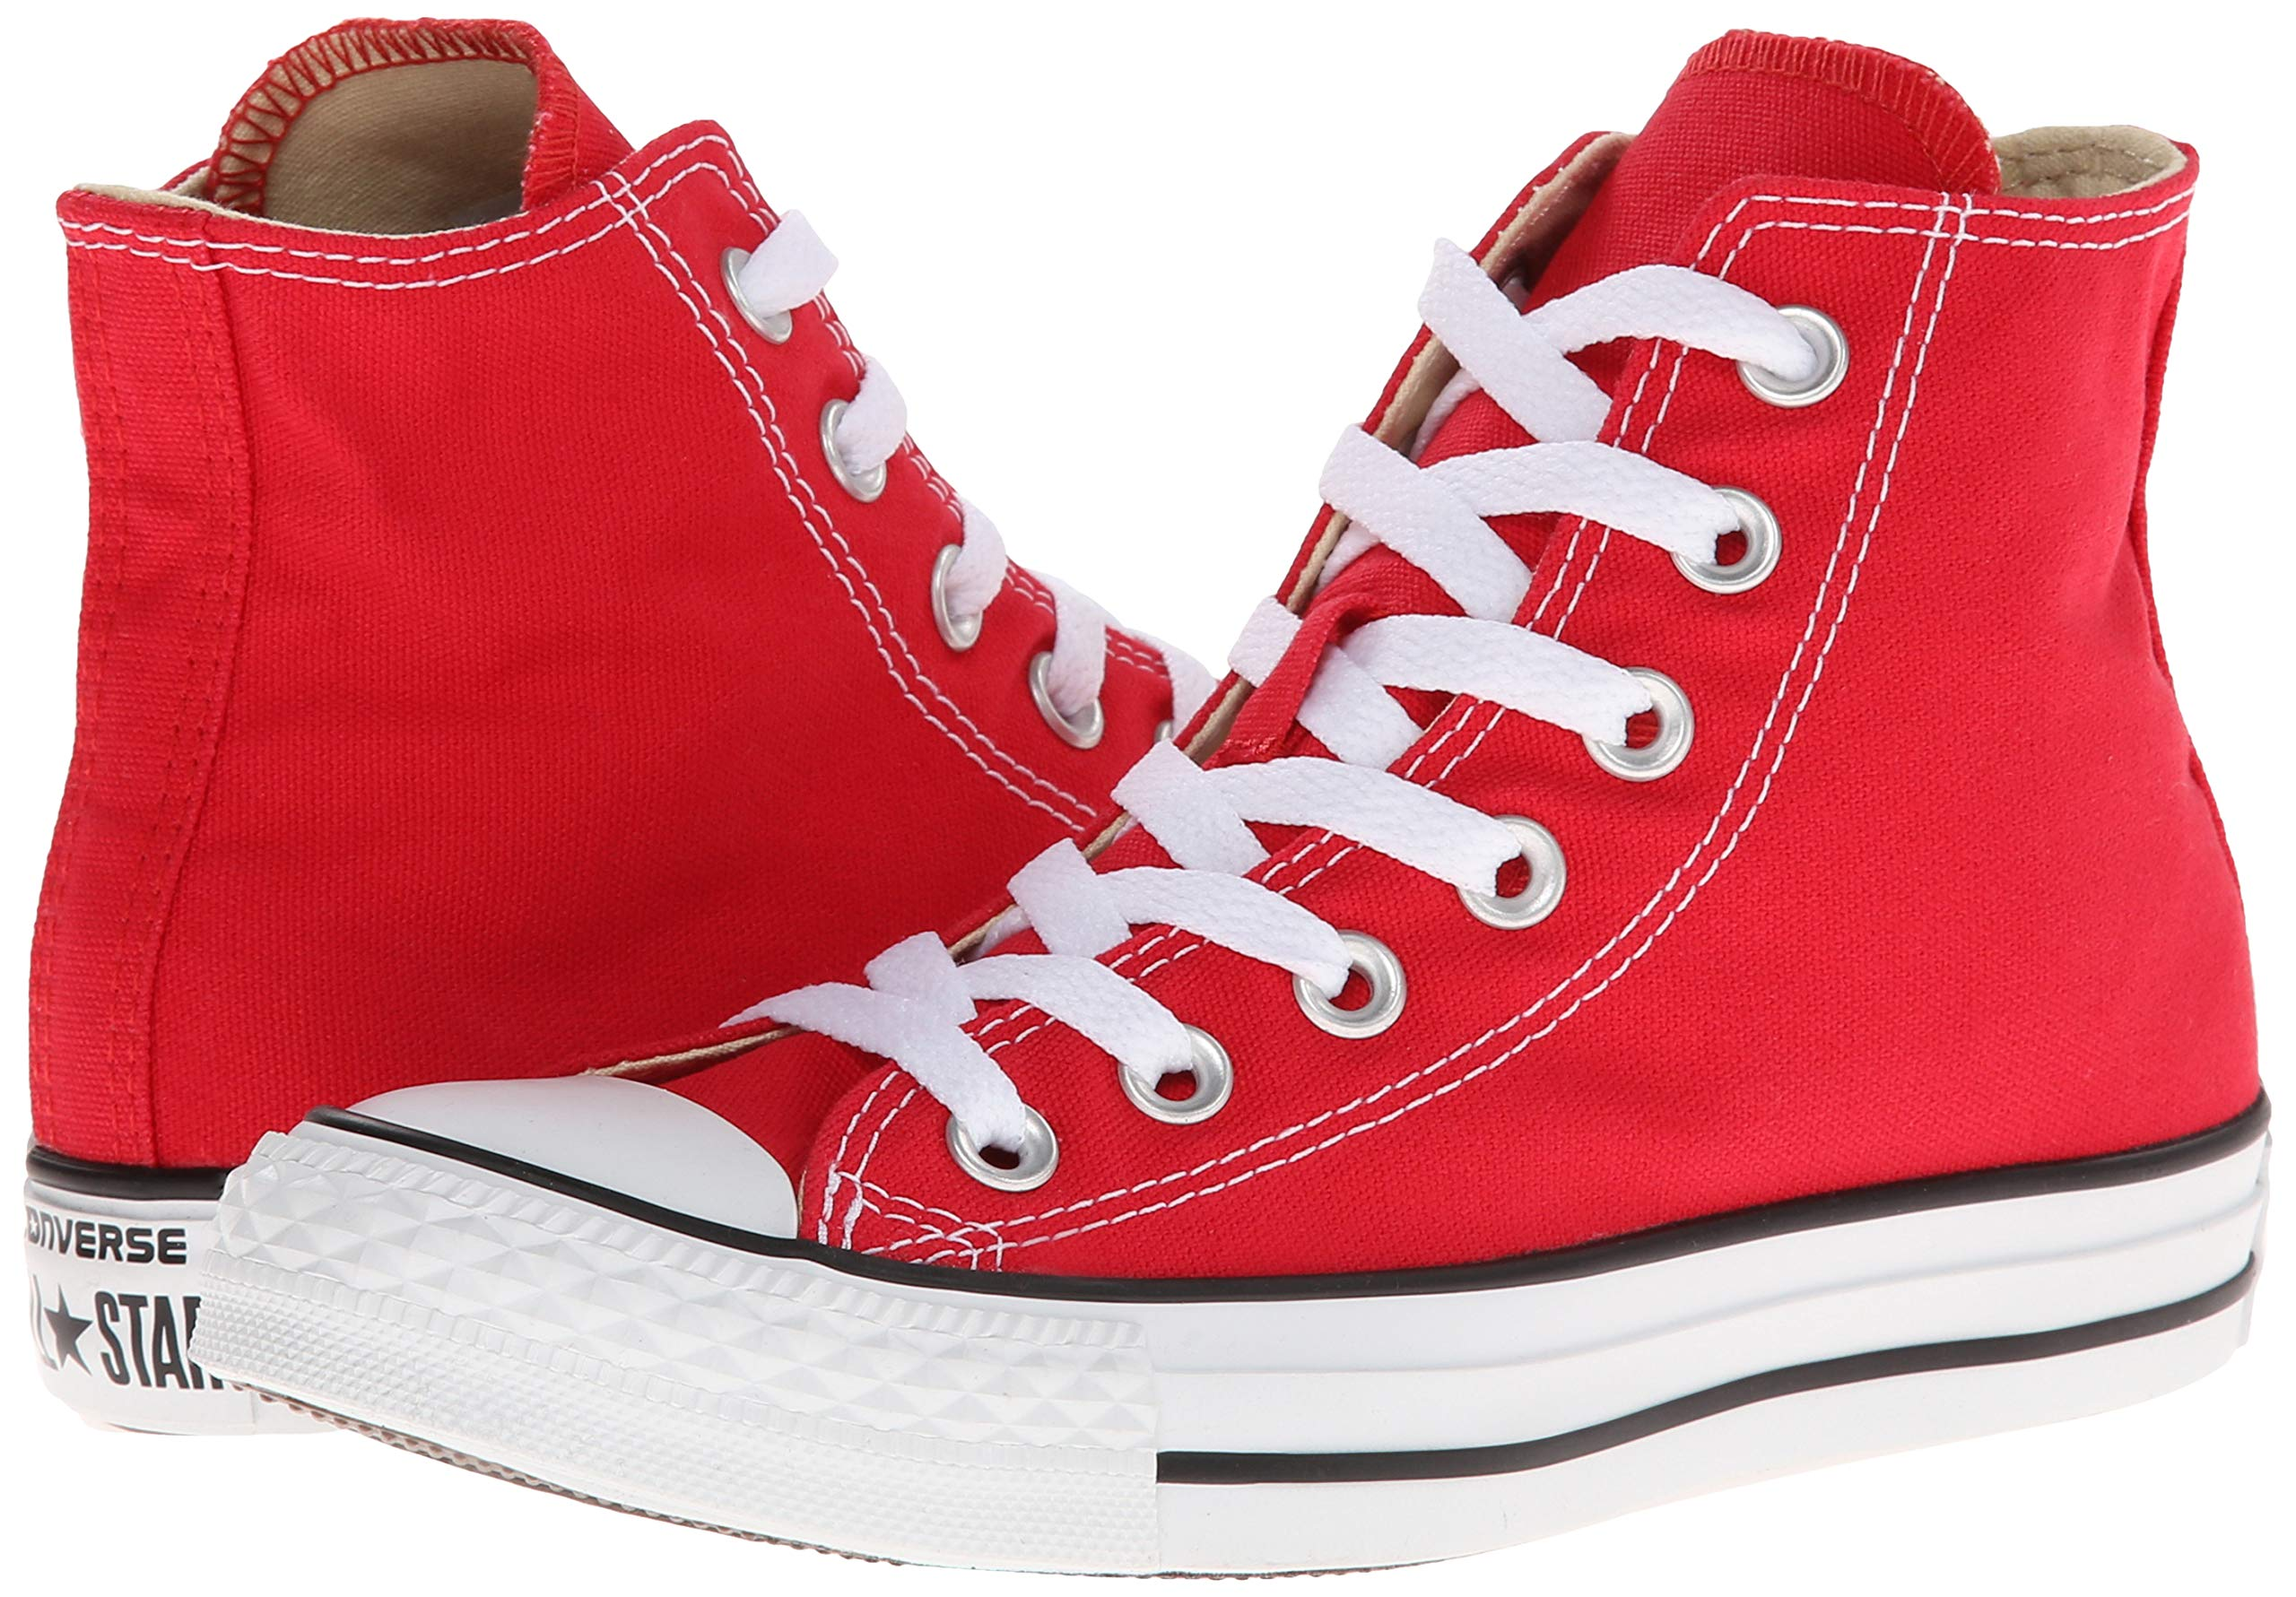 Converse Unisex Chuck Taylor All Star Low Top Red Sneakers - 6.5 D(M) US by Converse (Image #6)